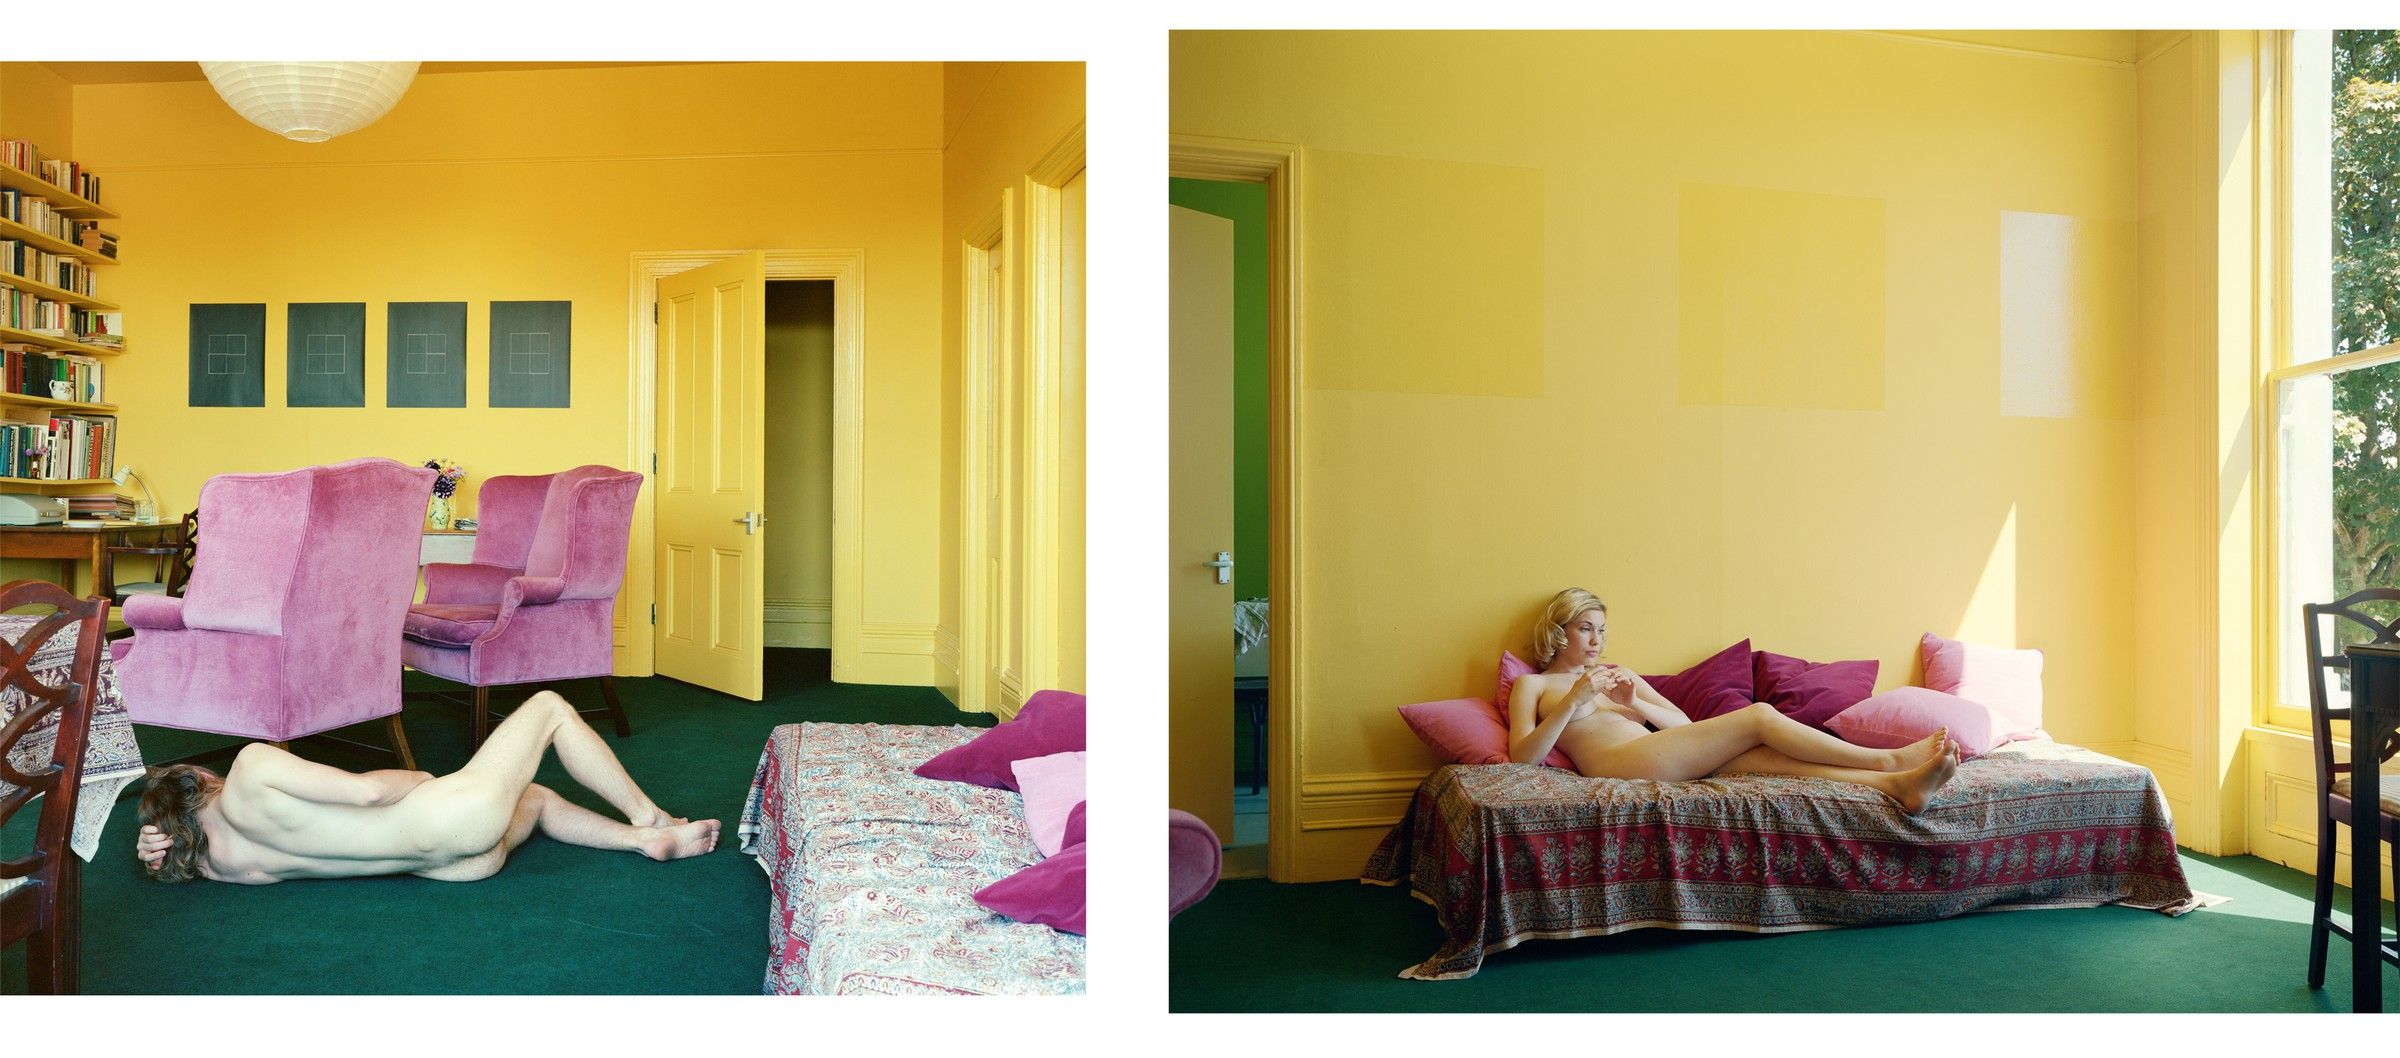 Summer Afternoons, Jeff Wall, 2013